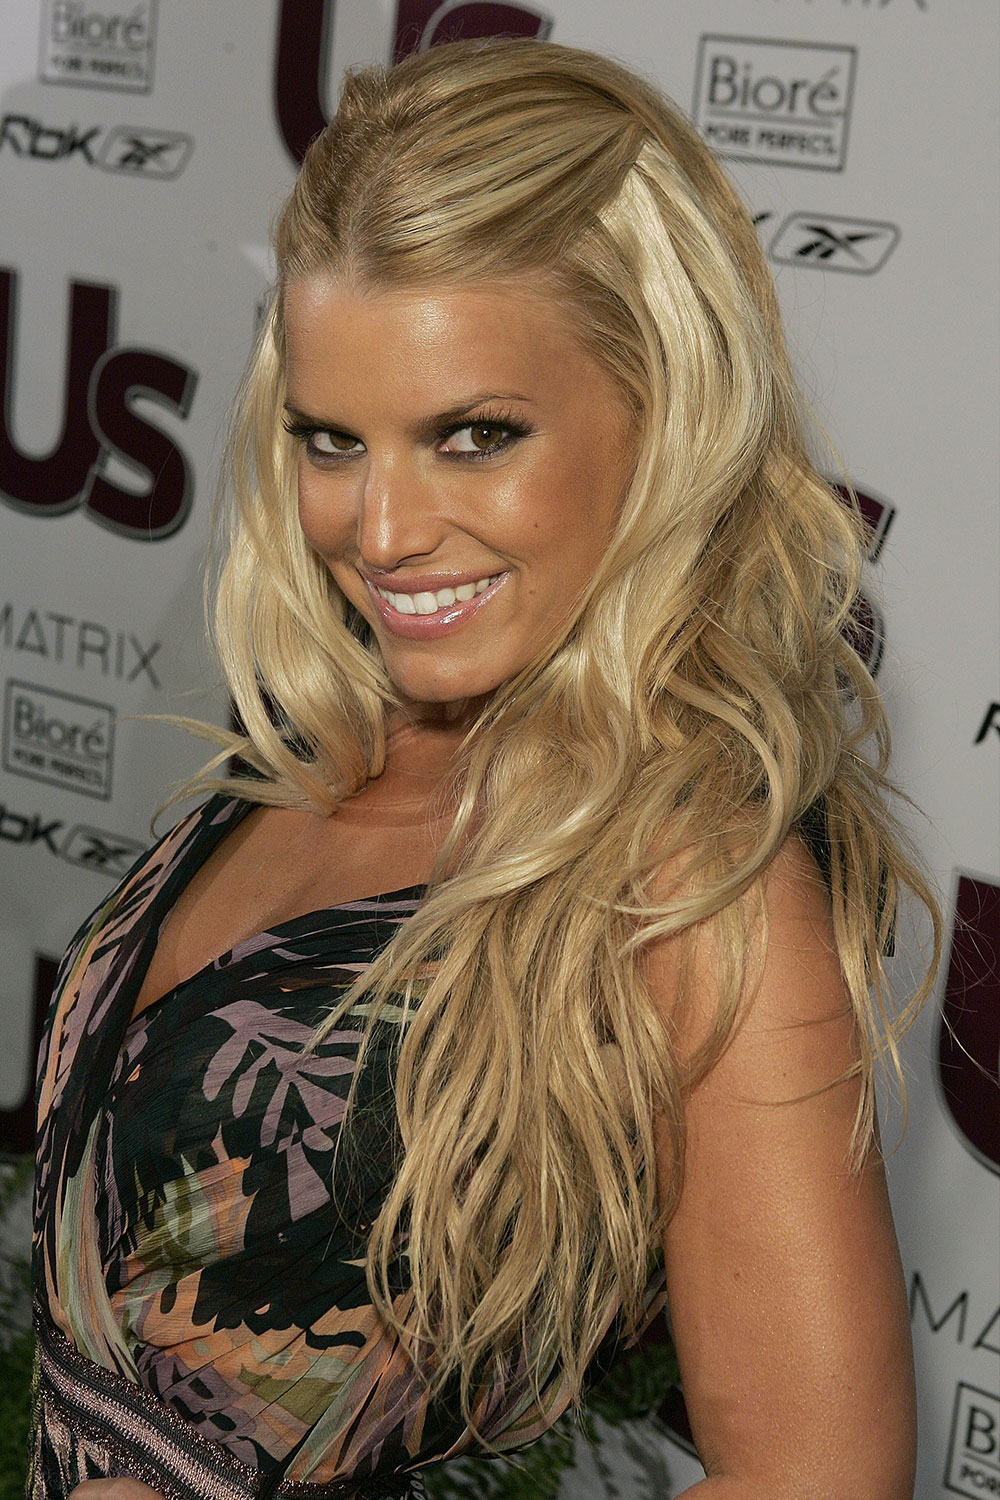 toast-jessica-simpson-red-carpet-event-production-10twelve.jpg